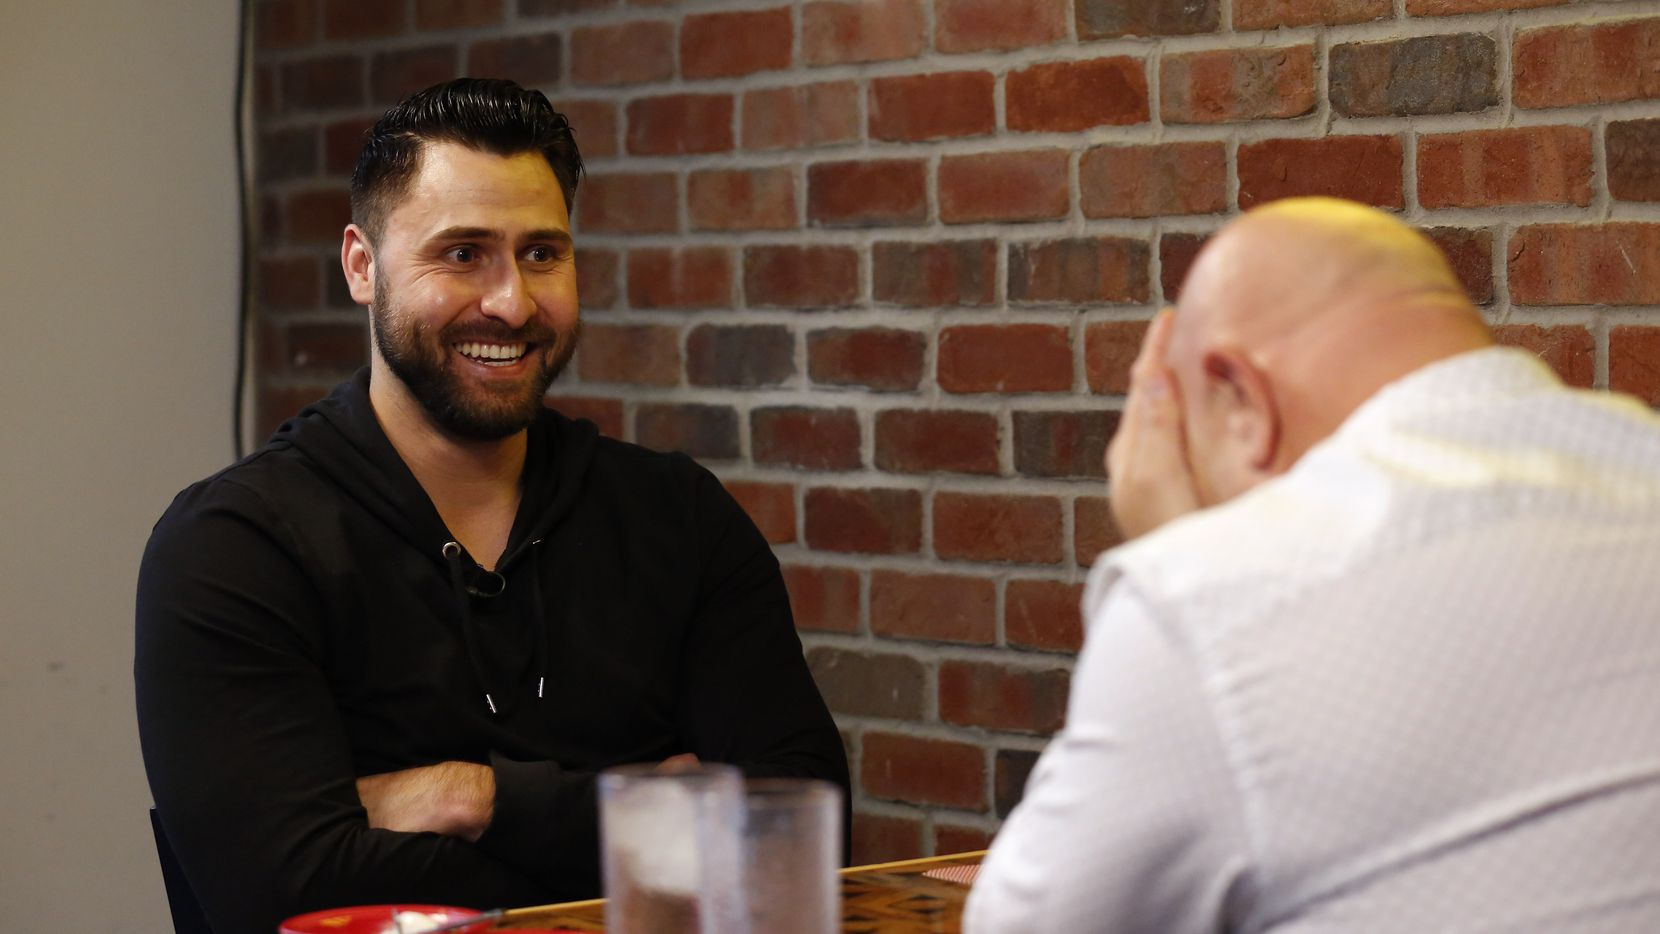 """Texas Rangers outfielder Joey Gallo and Dallas Morning News reporter Evan Grant at a taping of """"Meat the Press,"""" at Zoli's NY Pizza in Addison, Texas on Thursday, January 16, 2020."""